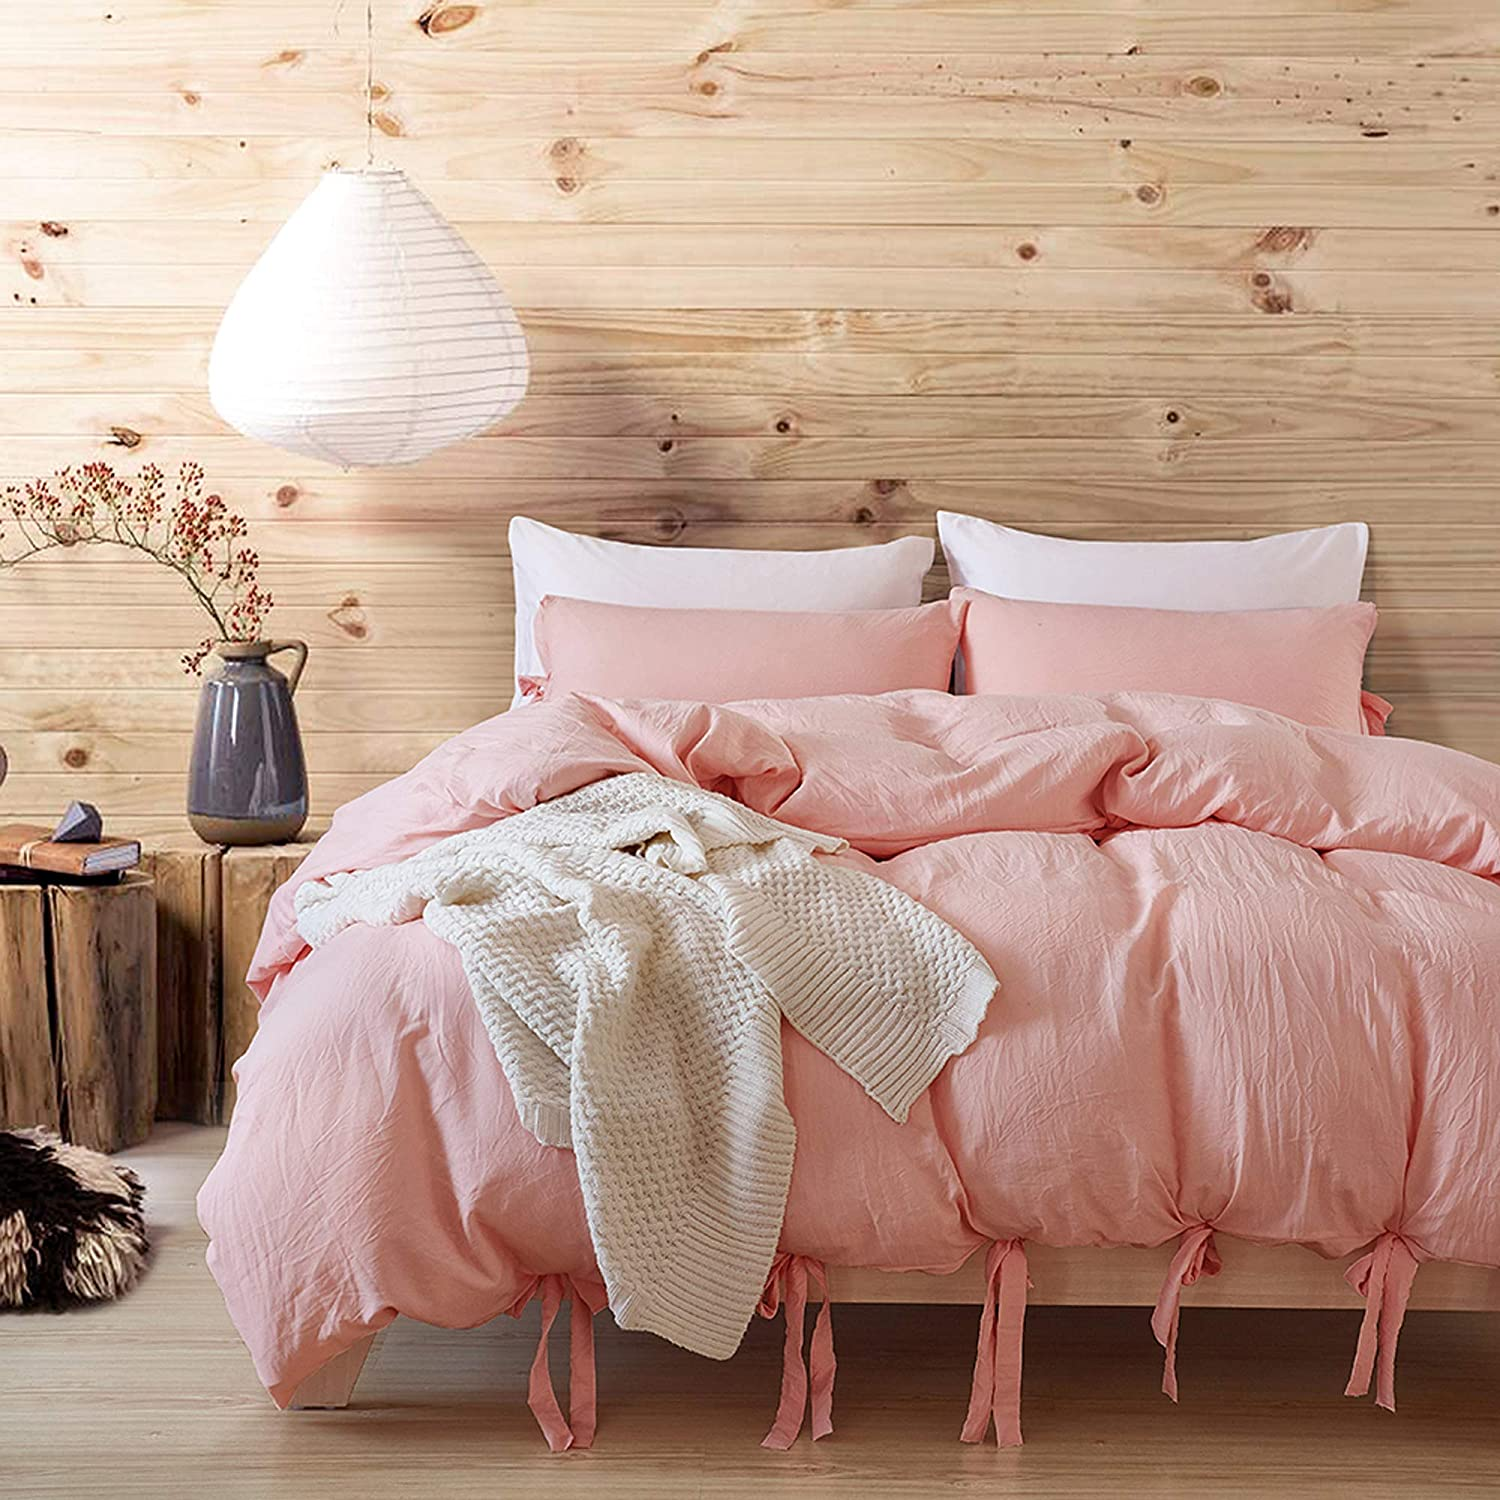 Max 51% OFF Sales results No. 1 Romdale Bowknot Duvet Cover King 104x90 Inch Solid Pin 3 Pieces